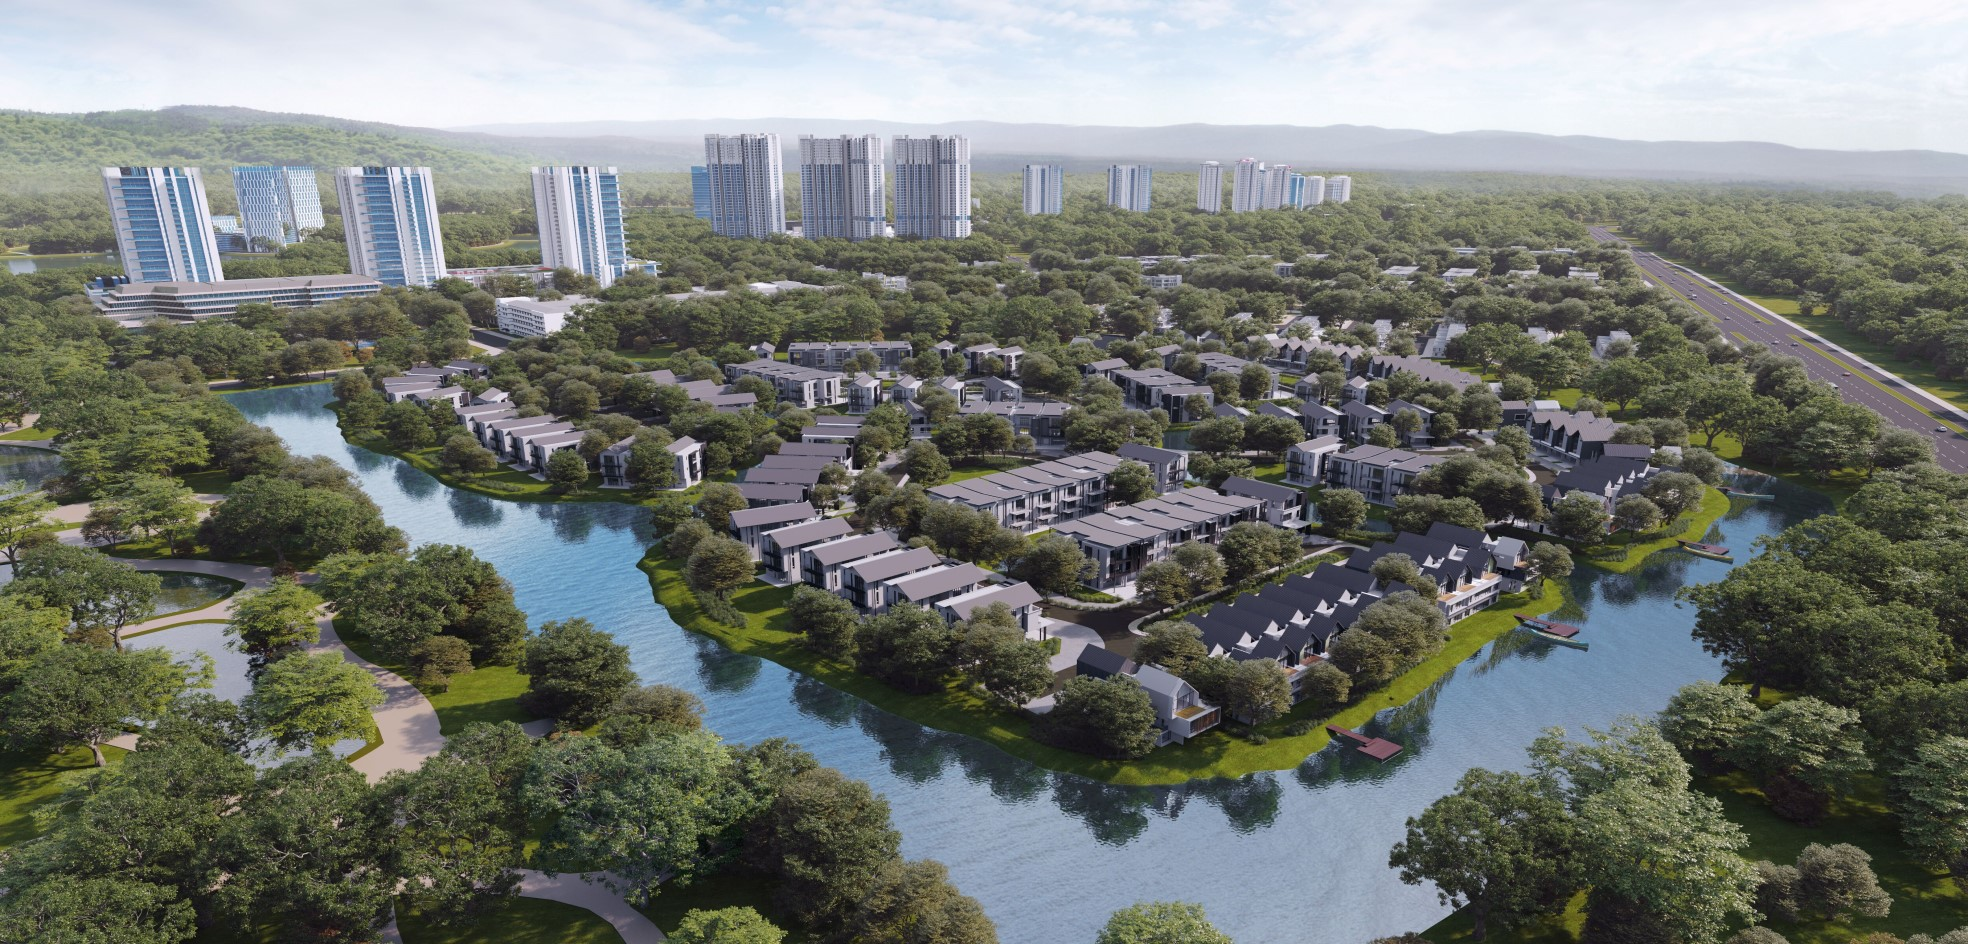 Acclaimed Developer Gamuda Land partners with Golden Emperor PropertiesIconic Hanoi Township DevelopmentExecutive Preview of Gamuda City Phase 2 – Central Residence